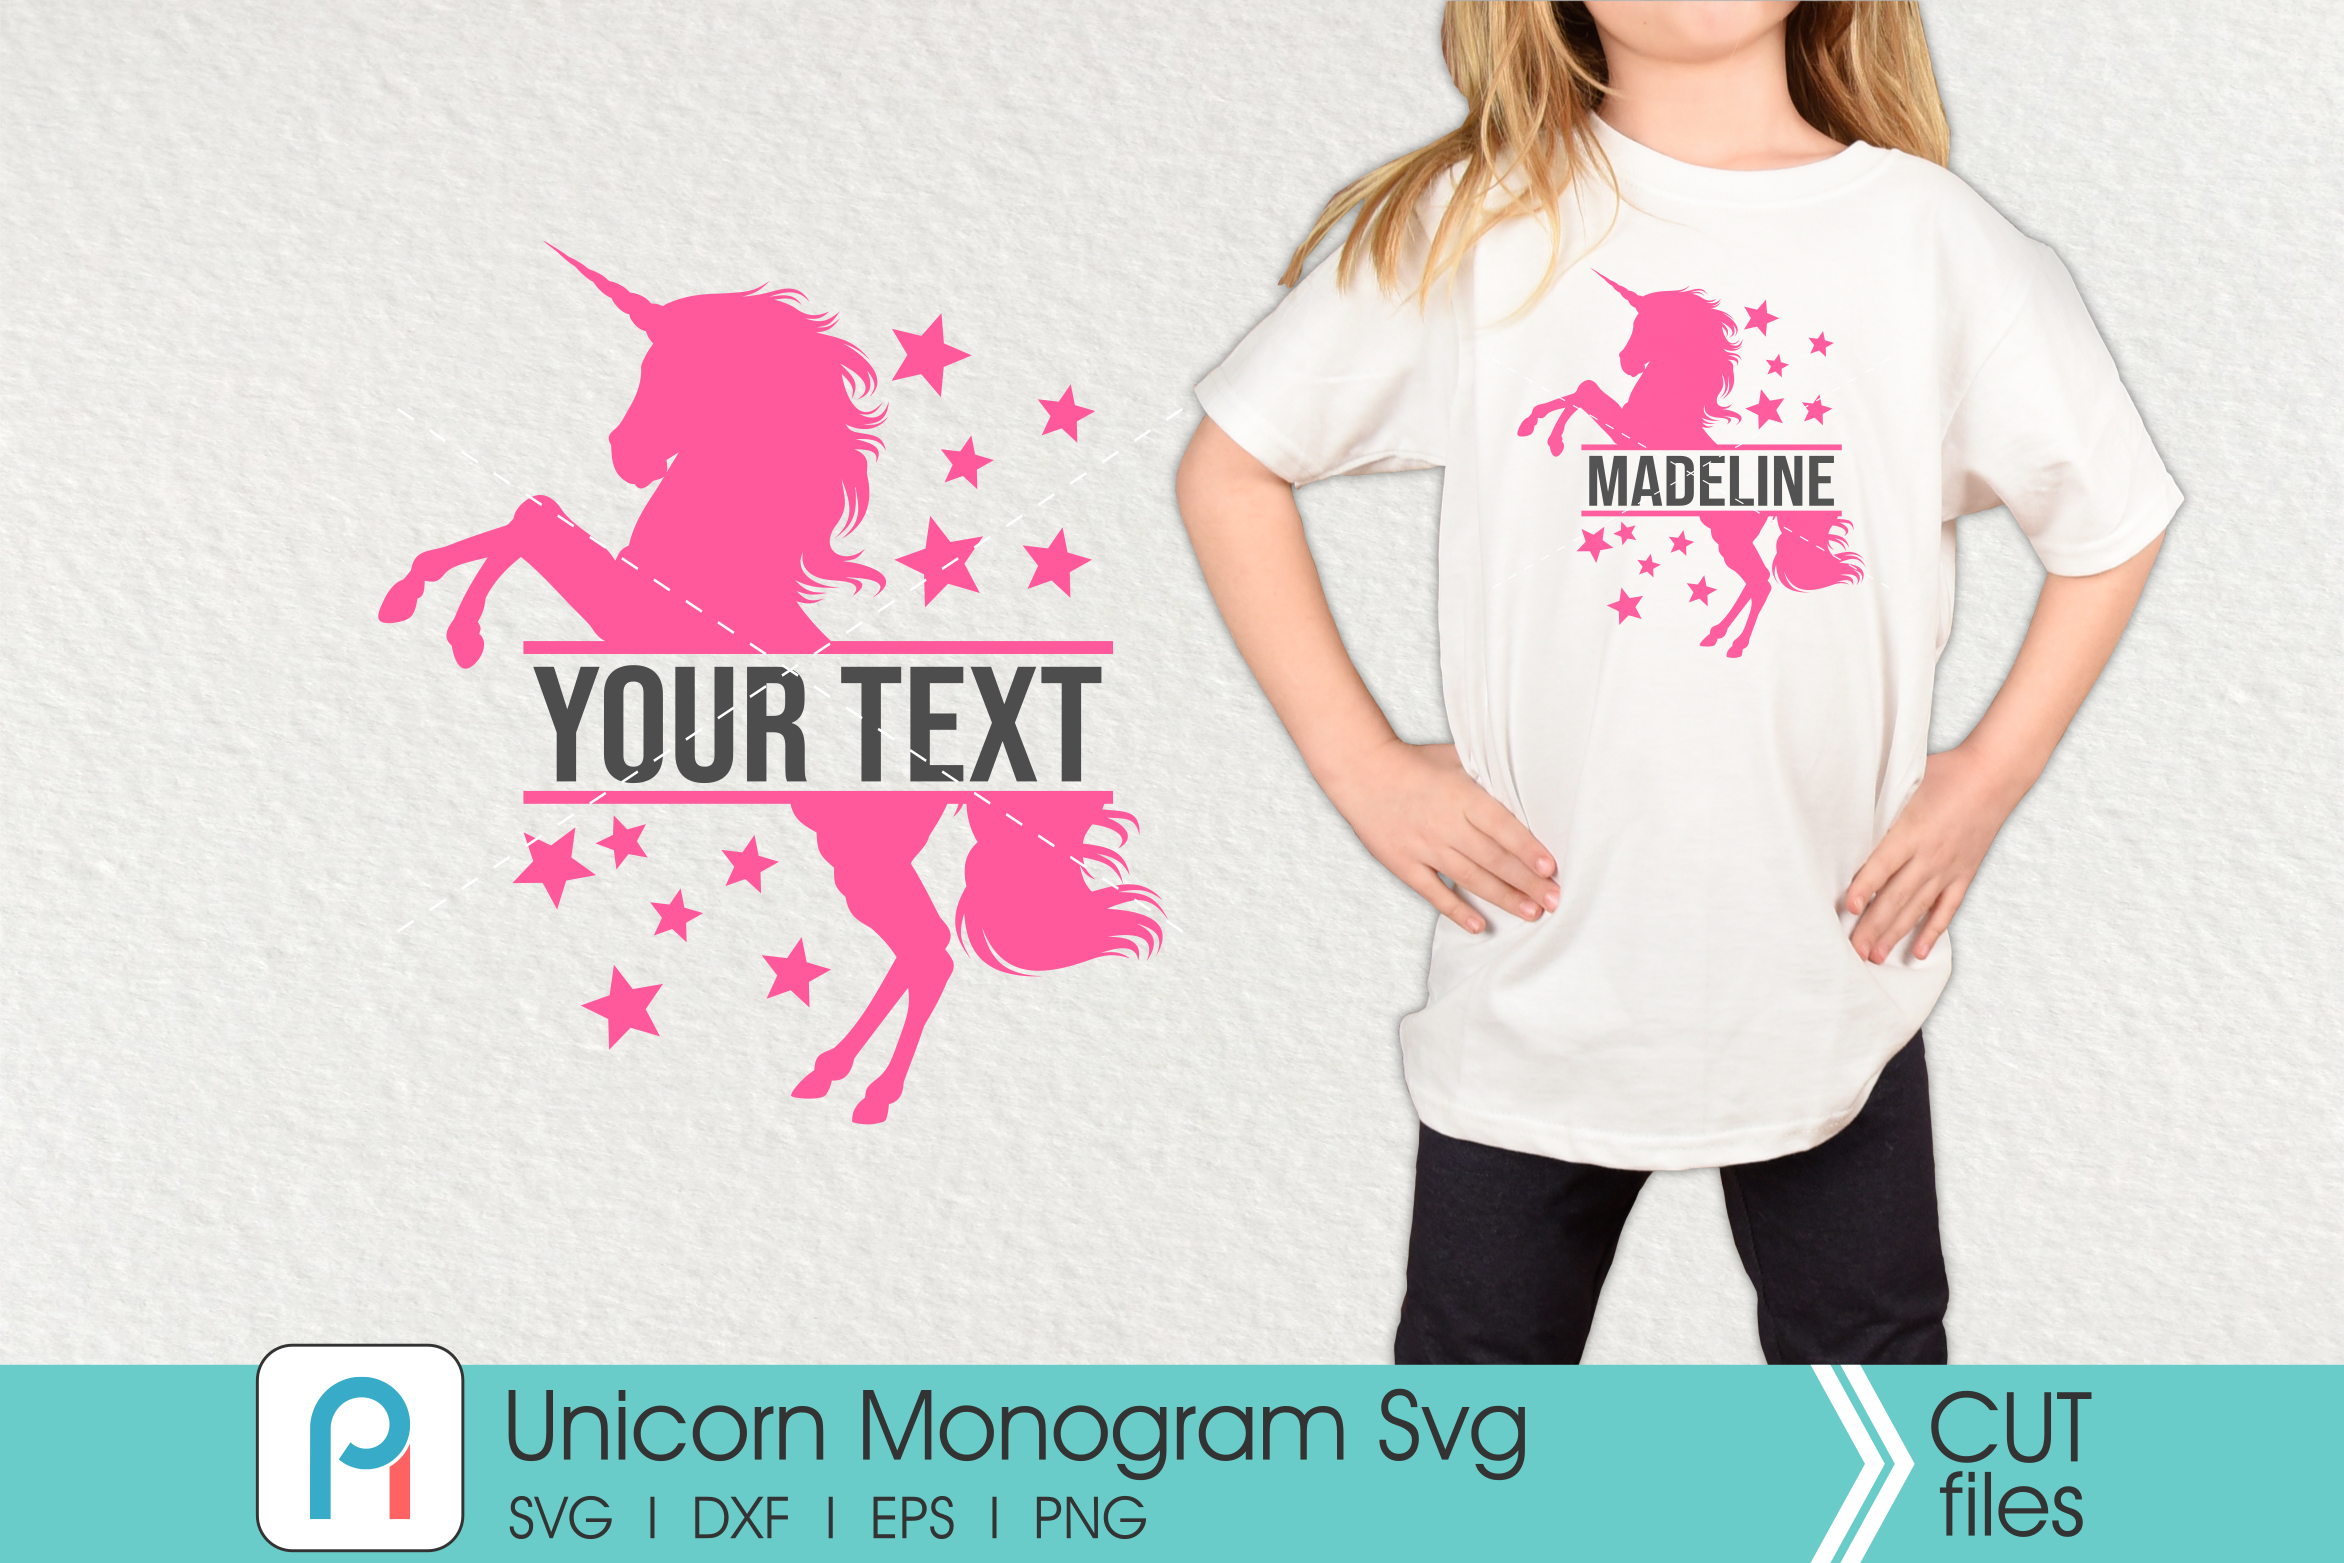 Download Free Unicorn Monogram Graphic By Pinoyartkreatib Creative Fabrica for Cricut Explore, Silhouette and other cutting machines.